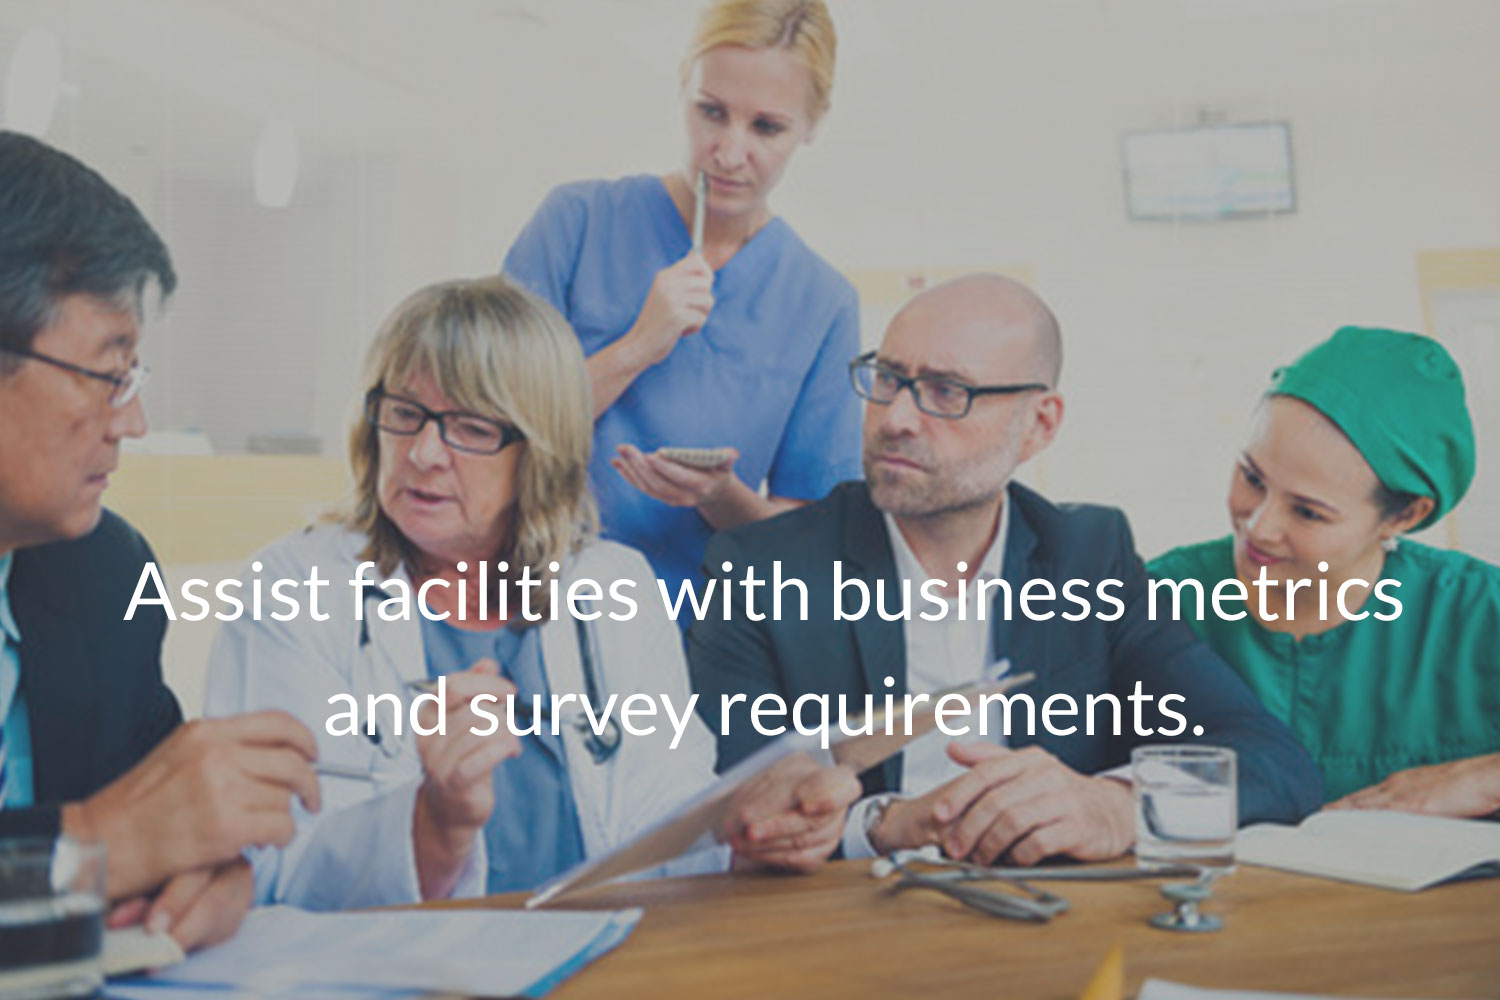 Assist facilities with business metrics and survey requirements